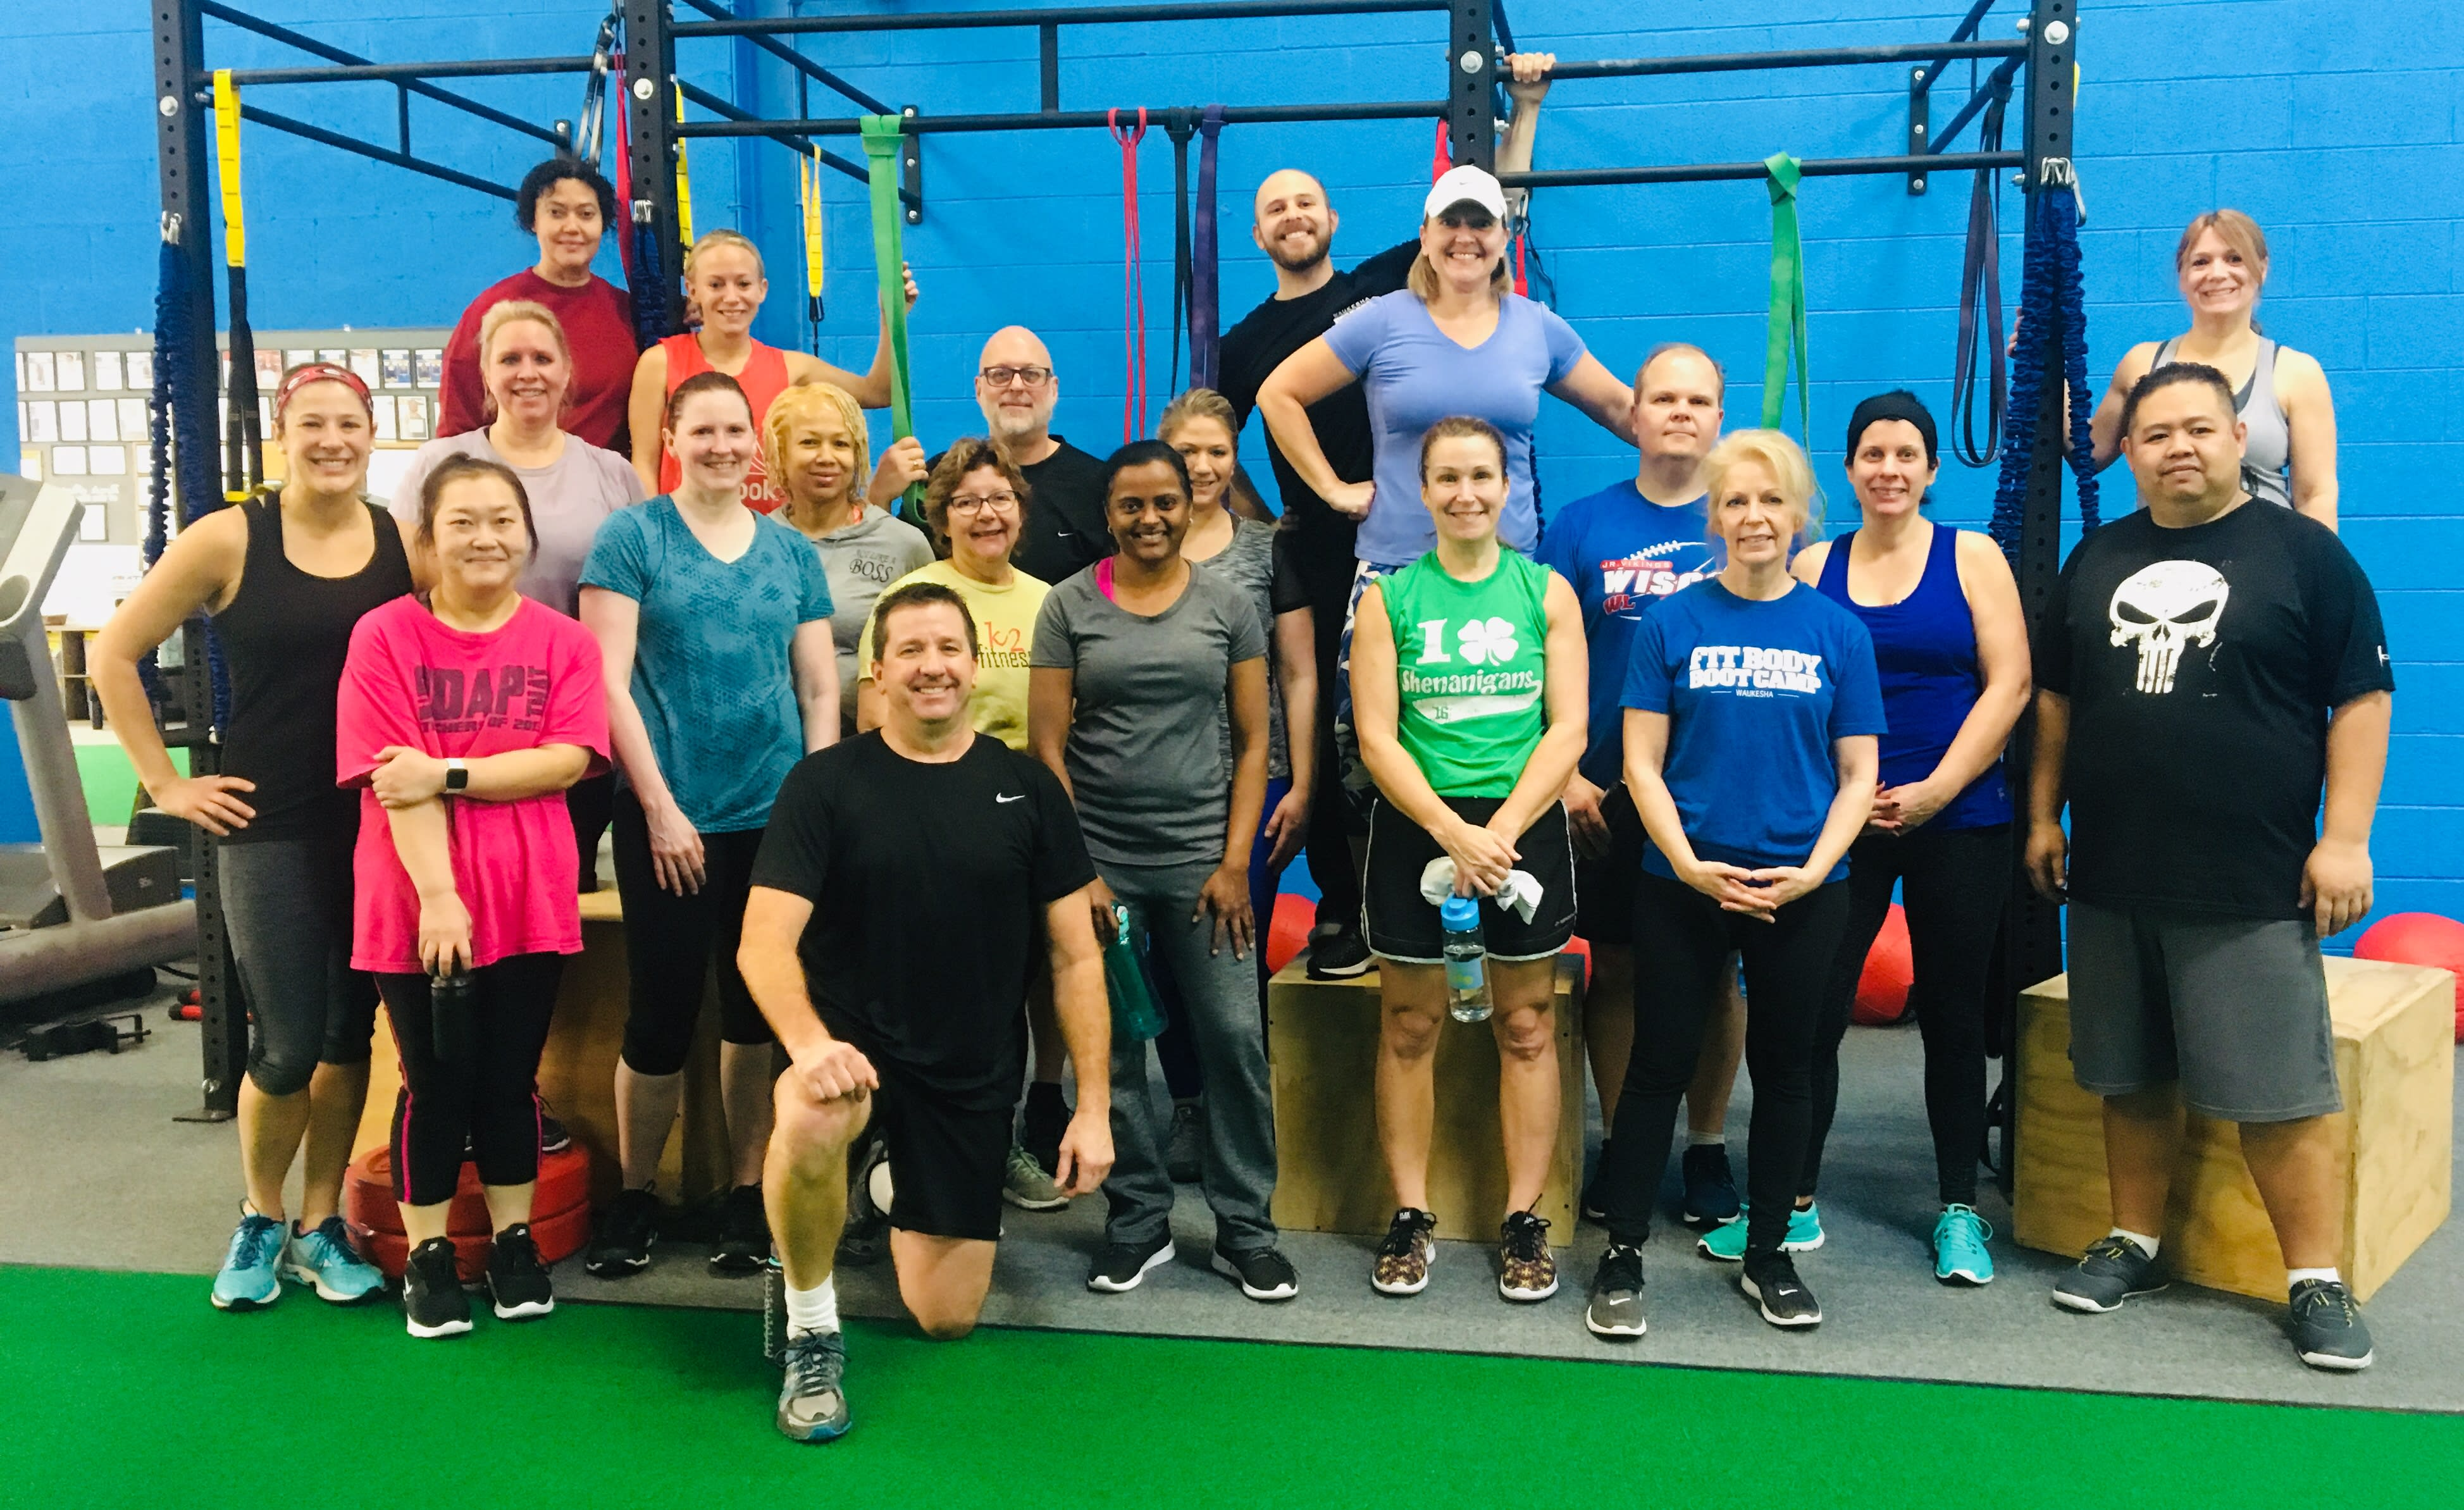 The Complete Approach to Health and Fitness for Waukesha, Brookfield, and Pewaukee